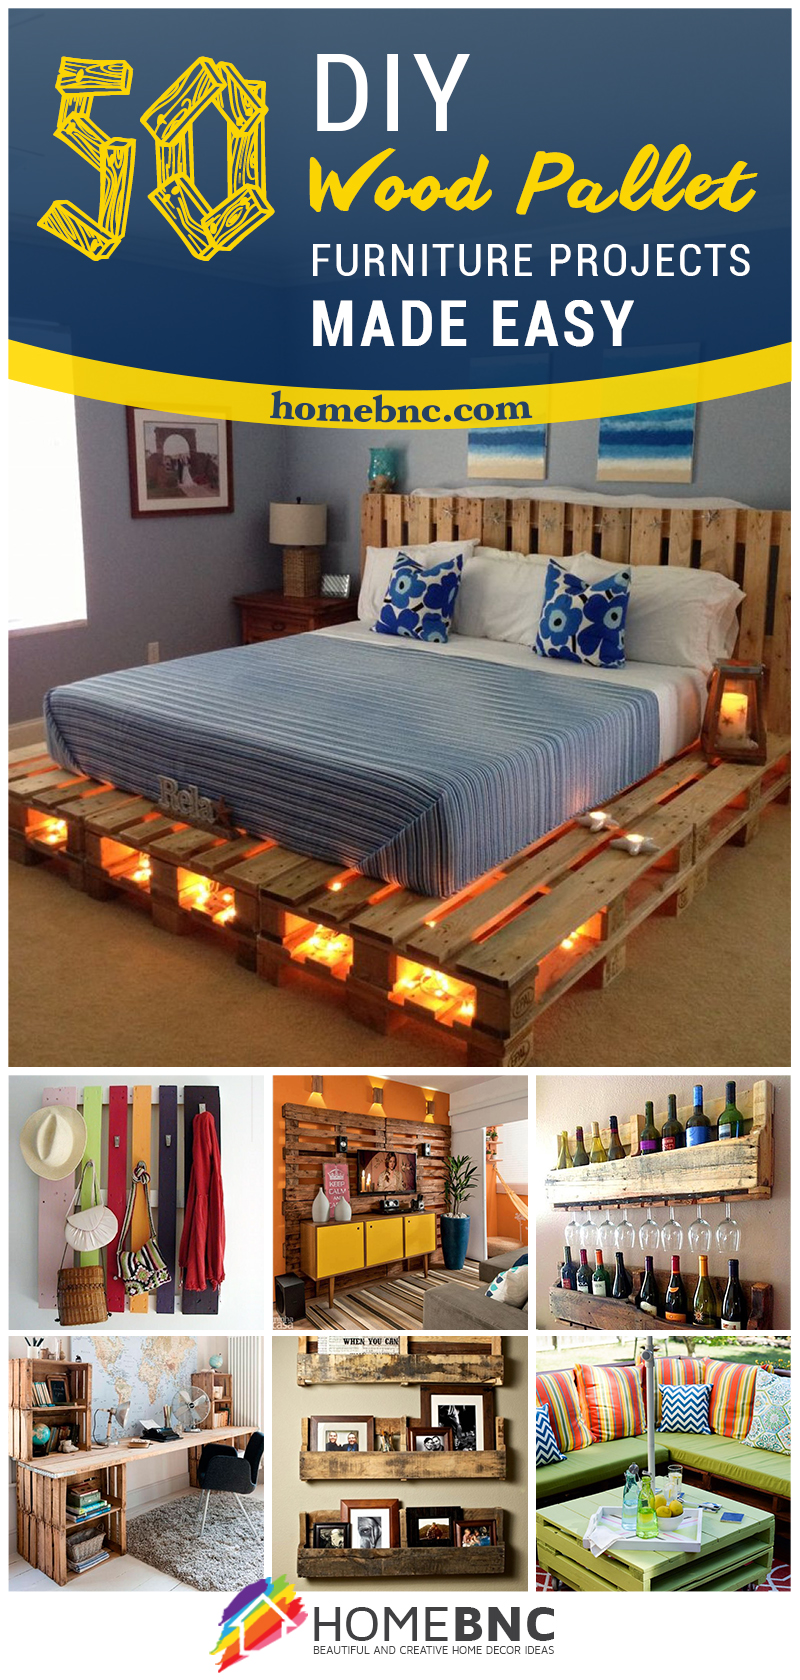 50 Best Creative Pallet Furniture Design Ideas for 2017